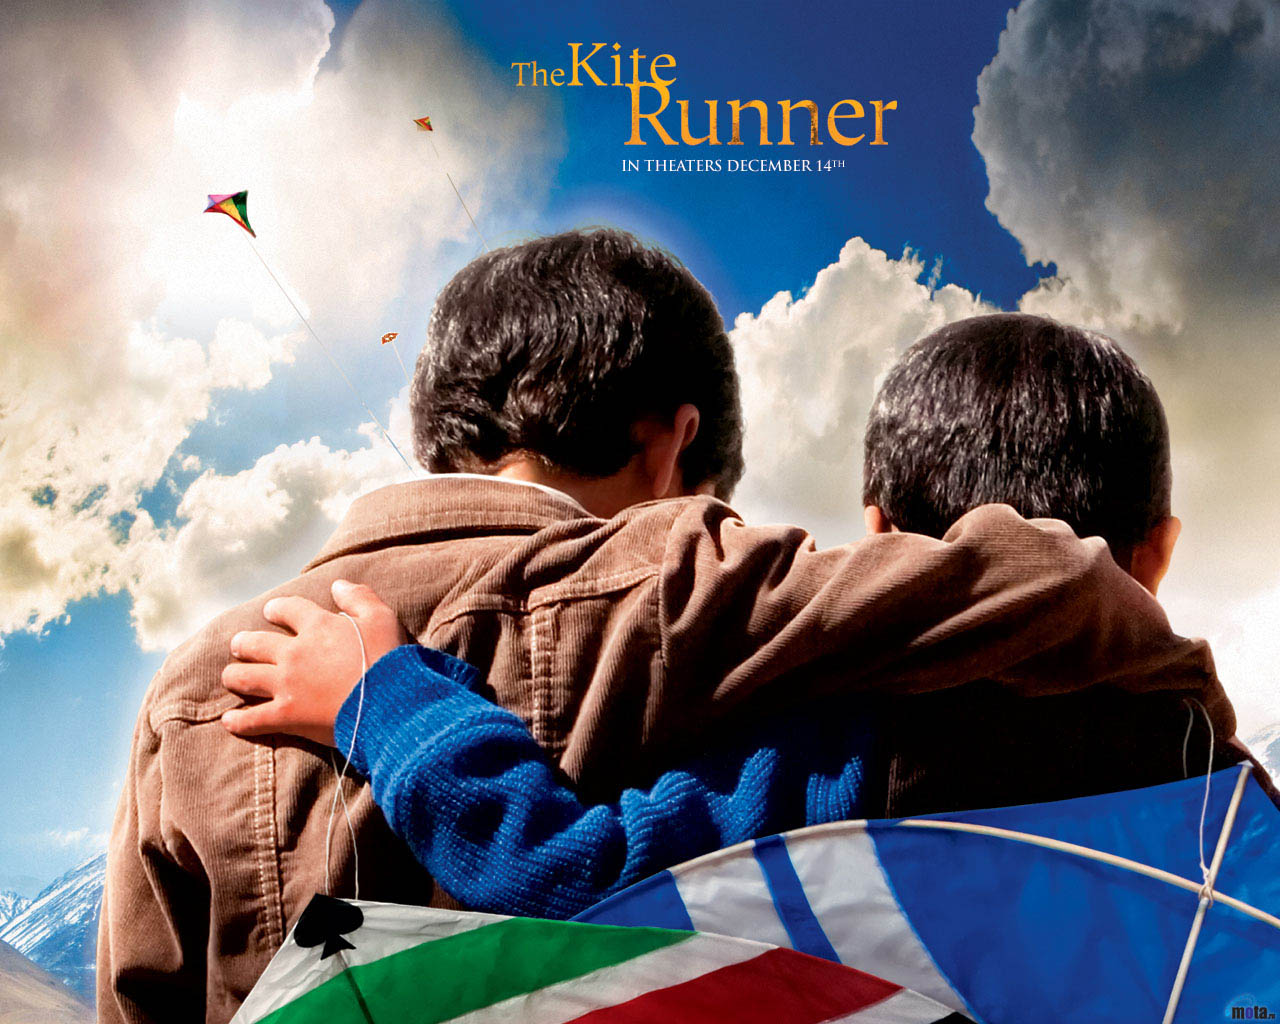 kite runner a boy who The kite runner is set primarily in afghanistan, but it also includes chapters set in america and pakistan spanning a time period from roughly 1973-2002, the kite runner begins with an anonymous narrator reflecting on the ways his past have shaped his personality and life.